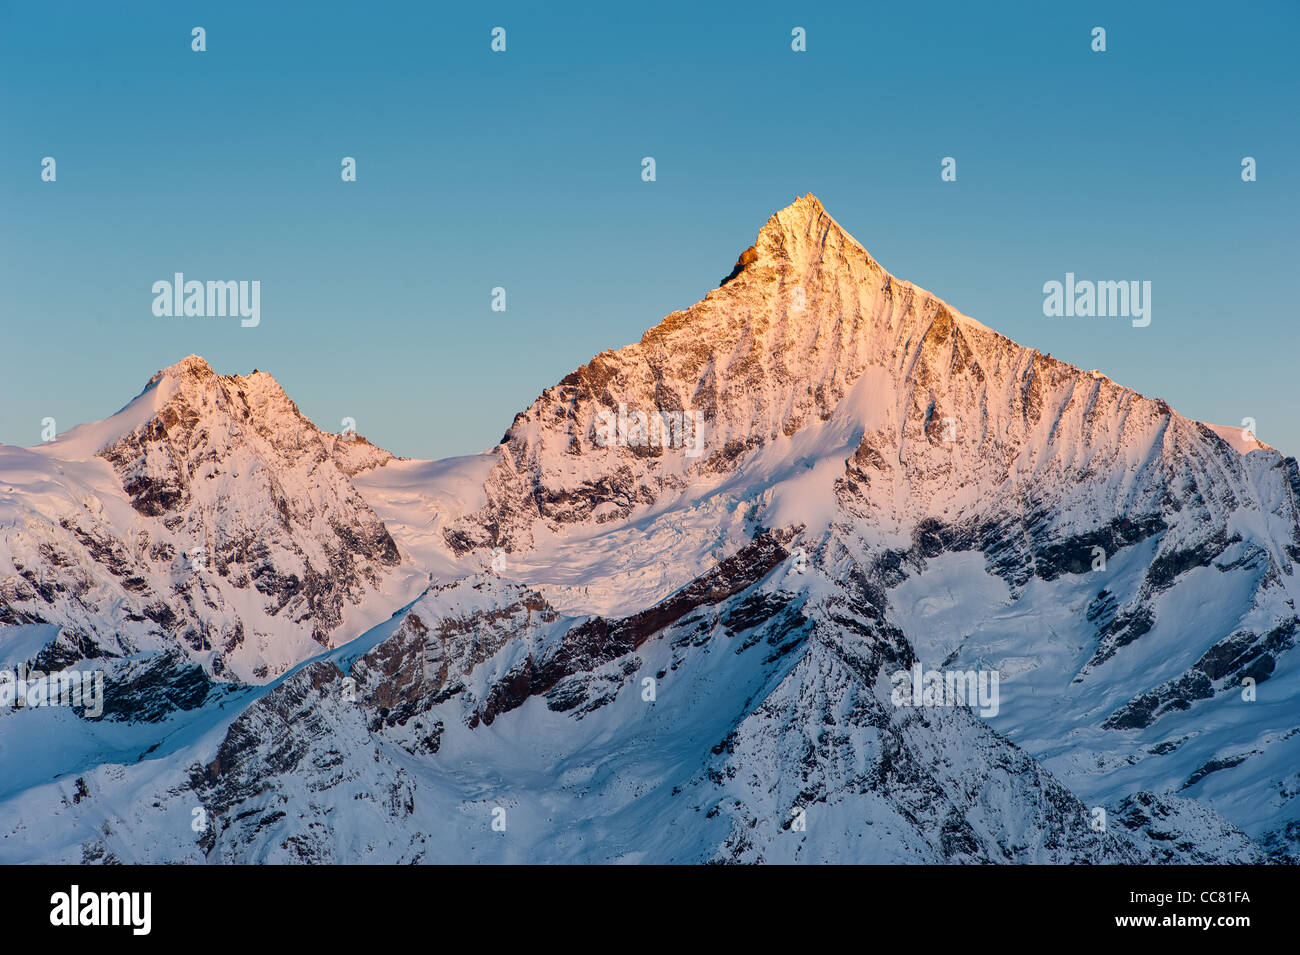 Weisshorn mountain peak at sunrise, view from Gornergrat, Zermatt, Switzerland Stock Photo